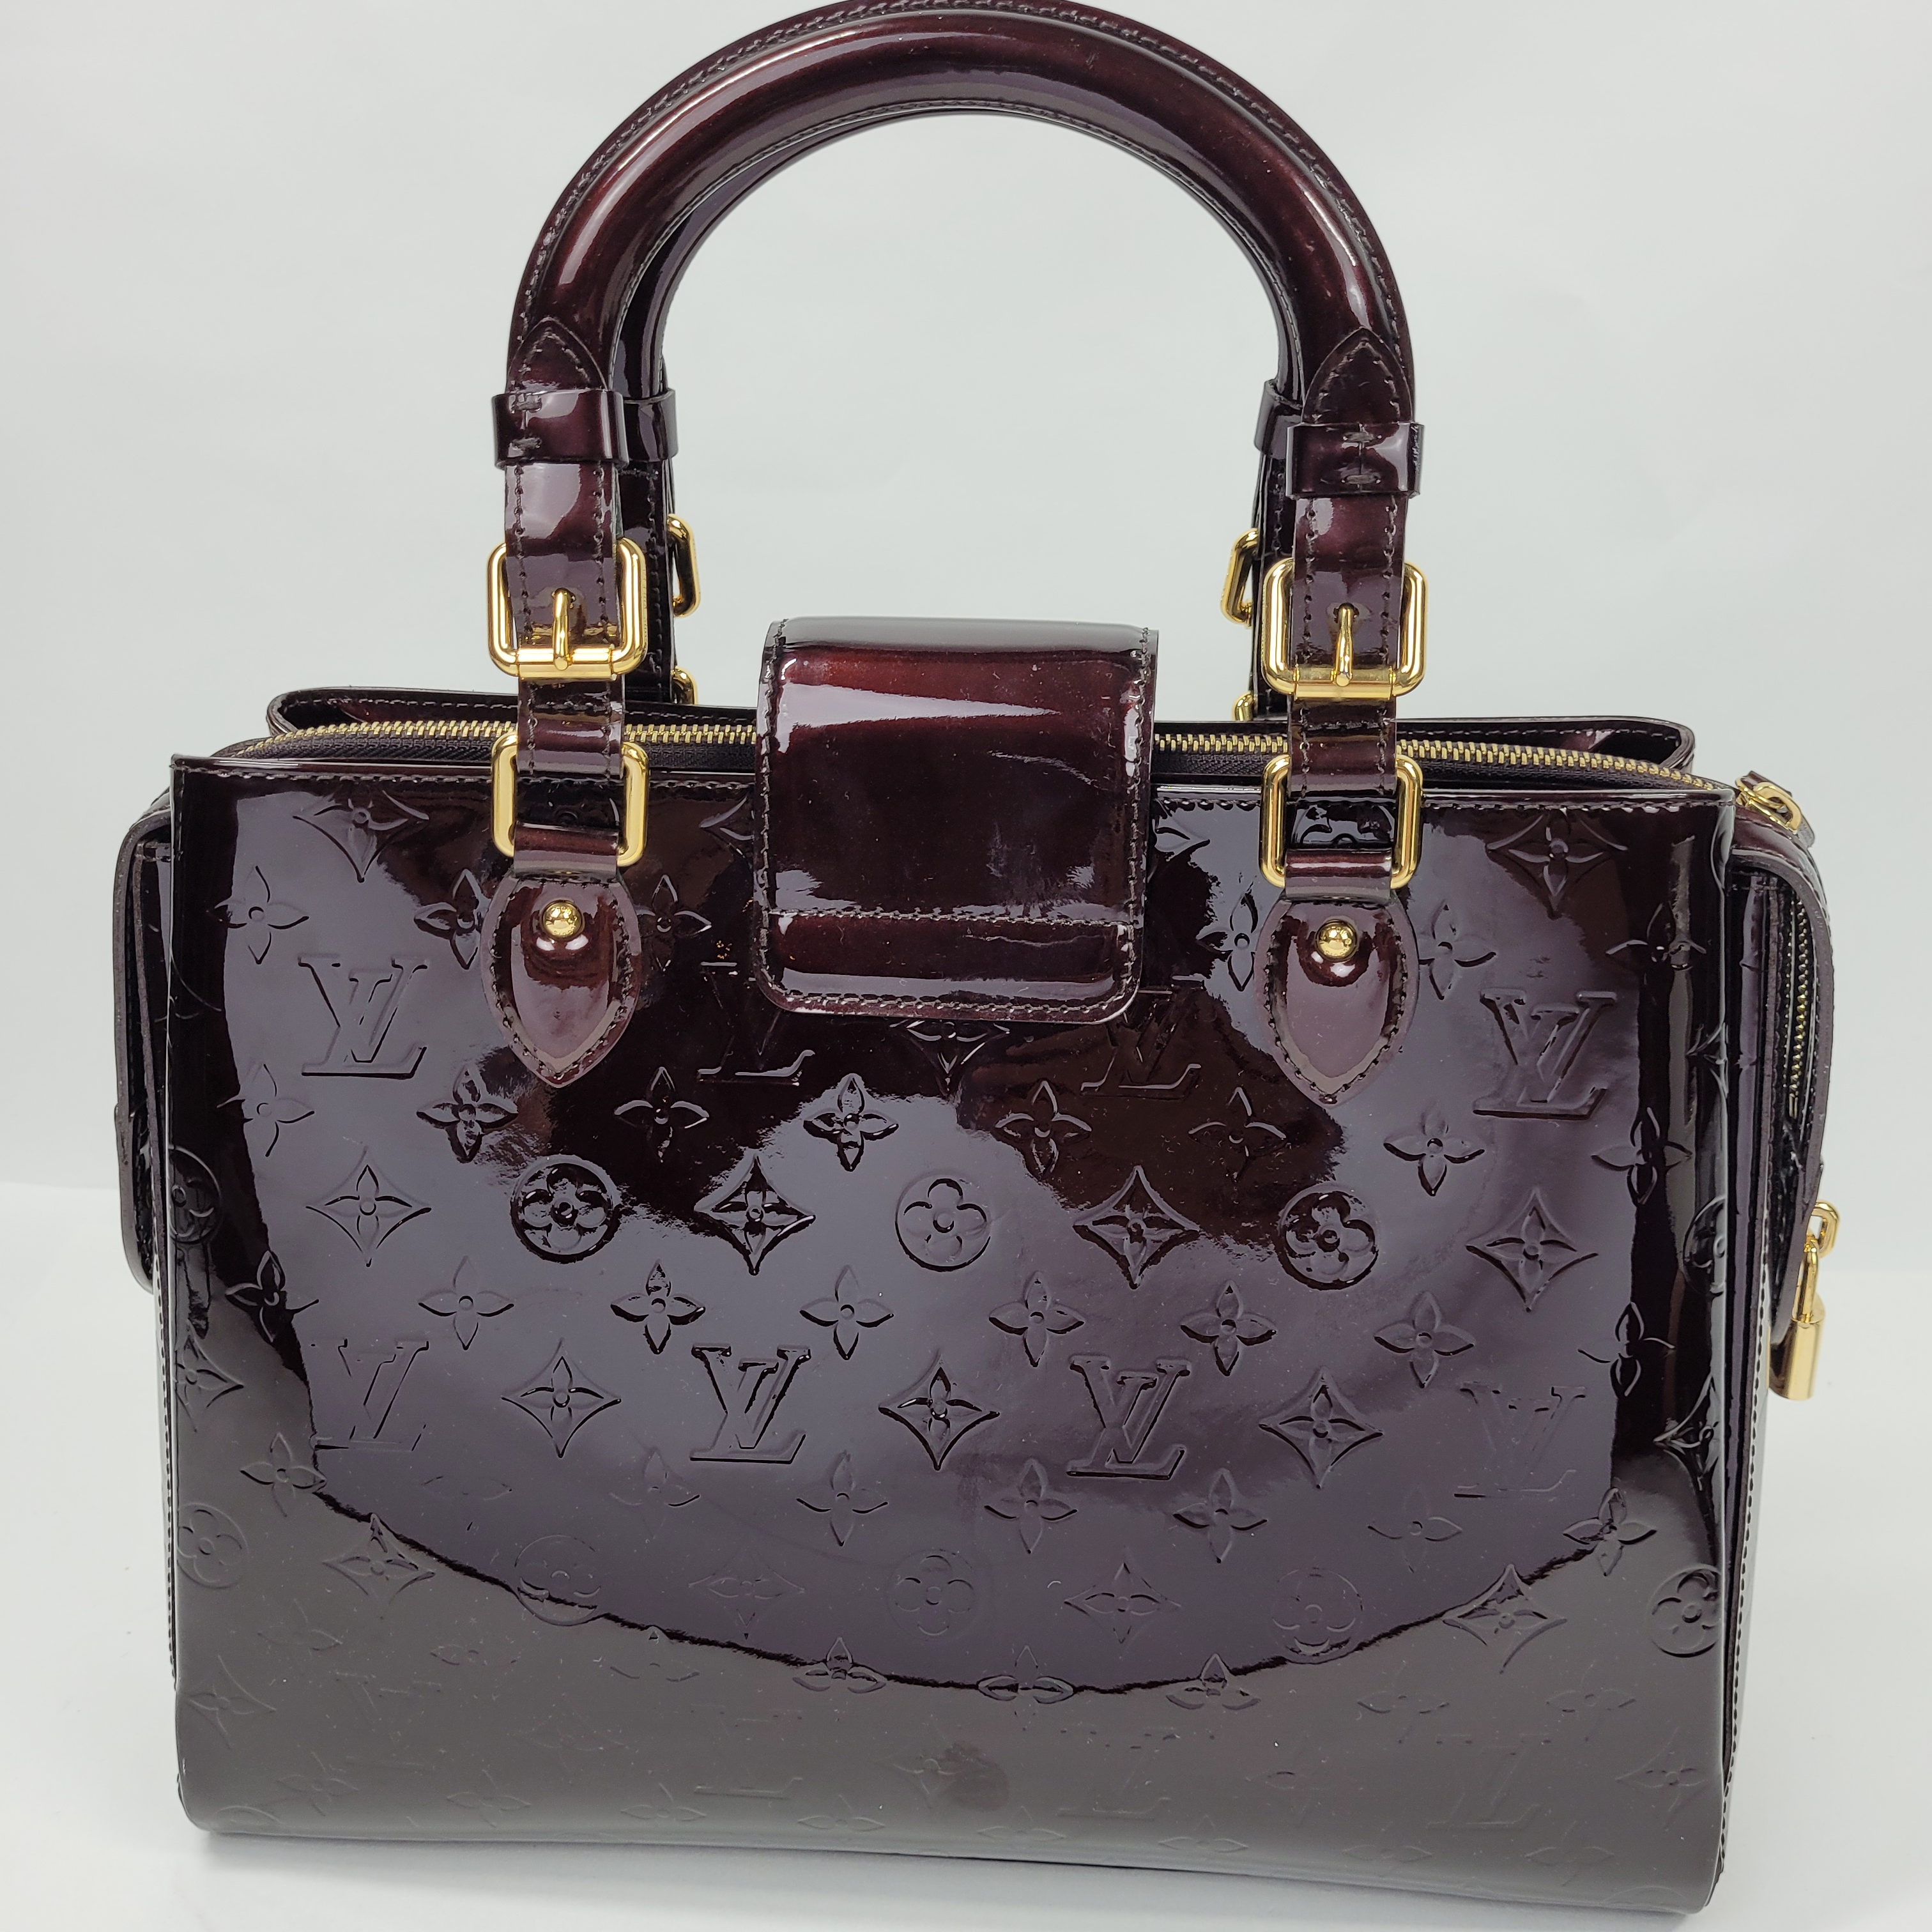 Louis Vuitton Amarante Monogram Vernis Melrose Avenue Bag In Burgundy